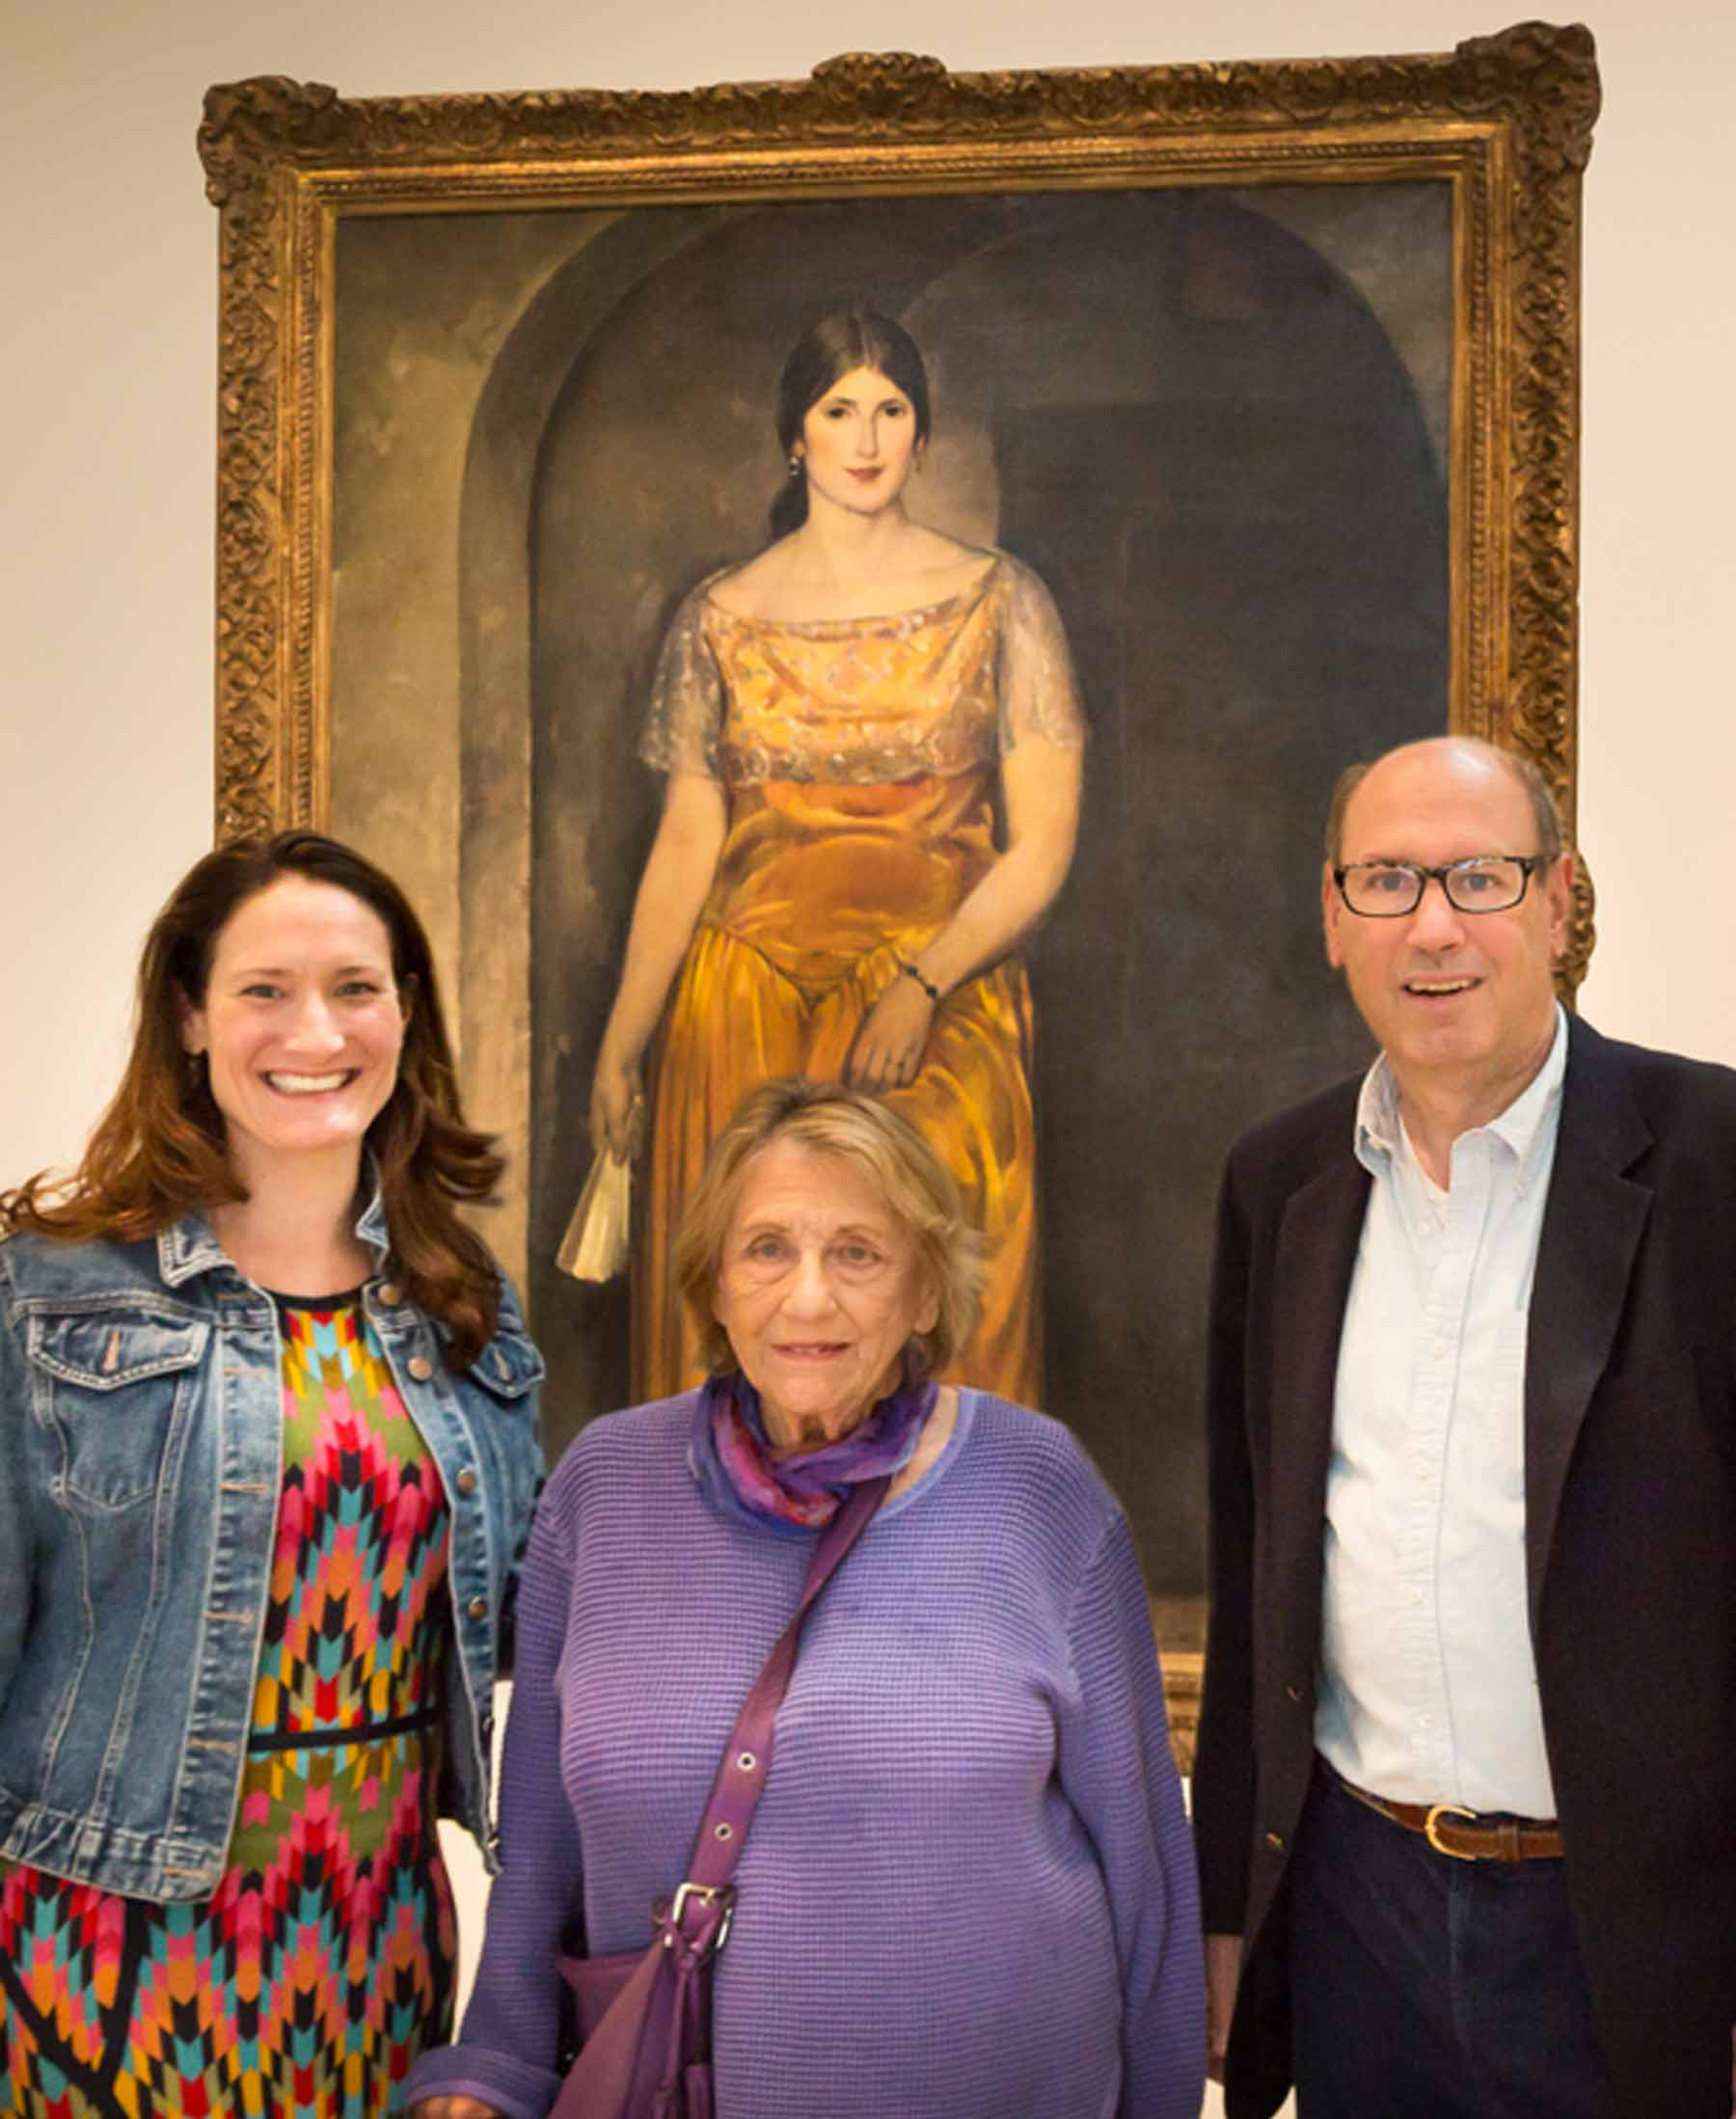 PEM Curator Austen Barron Bailly, Marie Kroll Rose and her son Jim Rose. Photo by Allison White